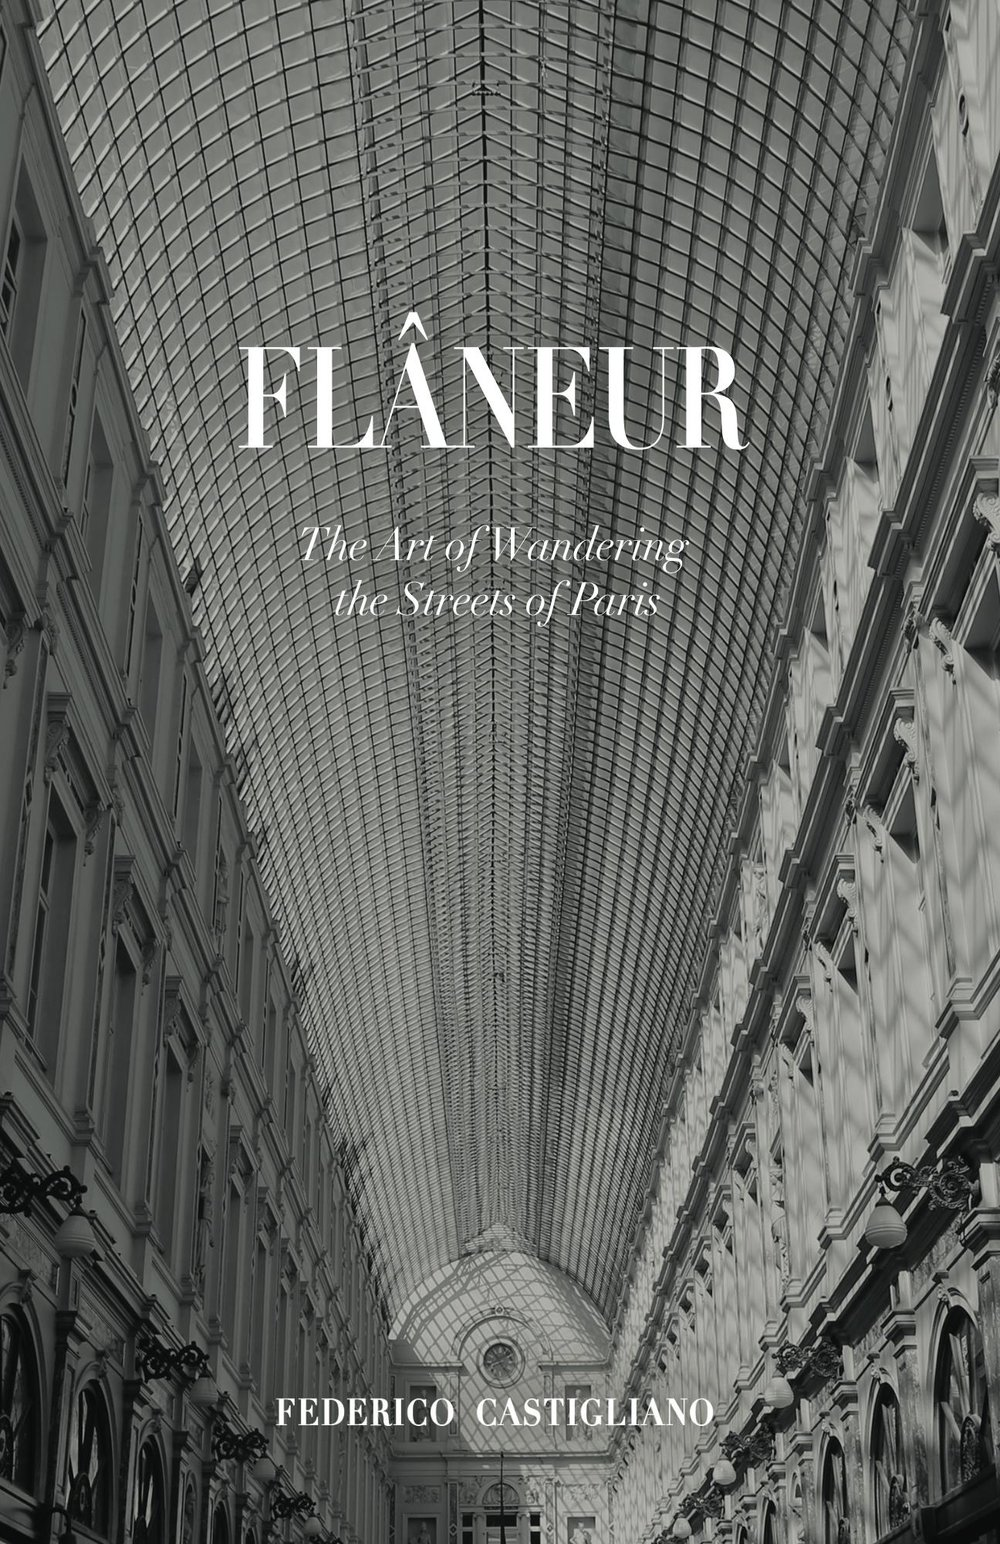 Flâneur  - The Art of Wandering the Streets of ParisFlâneur teaches how to roam without an aim, to get lost in the city. It will transform your walk around Paris into an exciting and memorable experience.